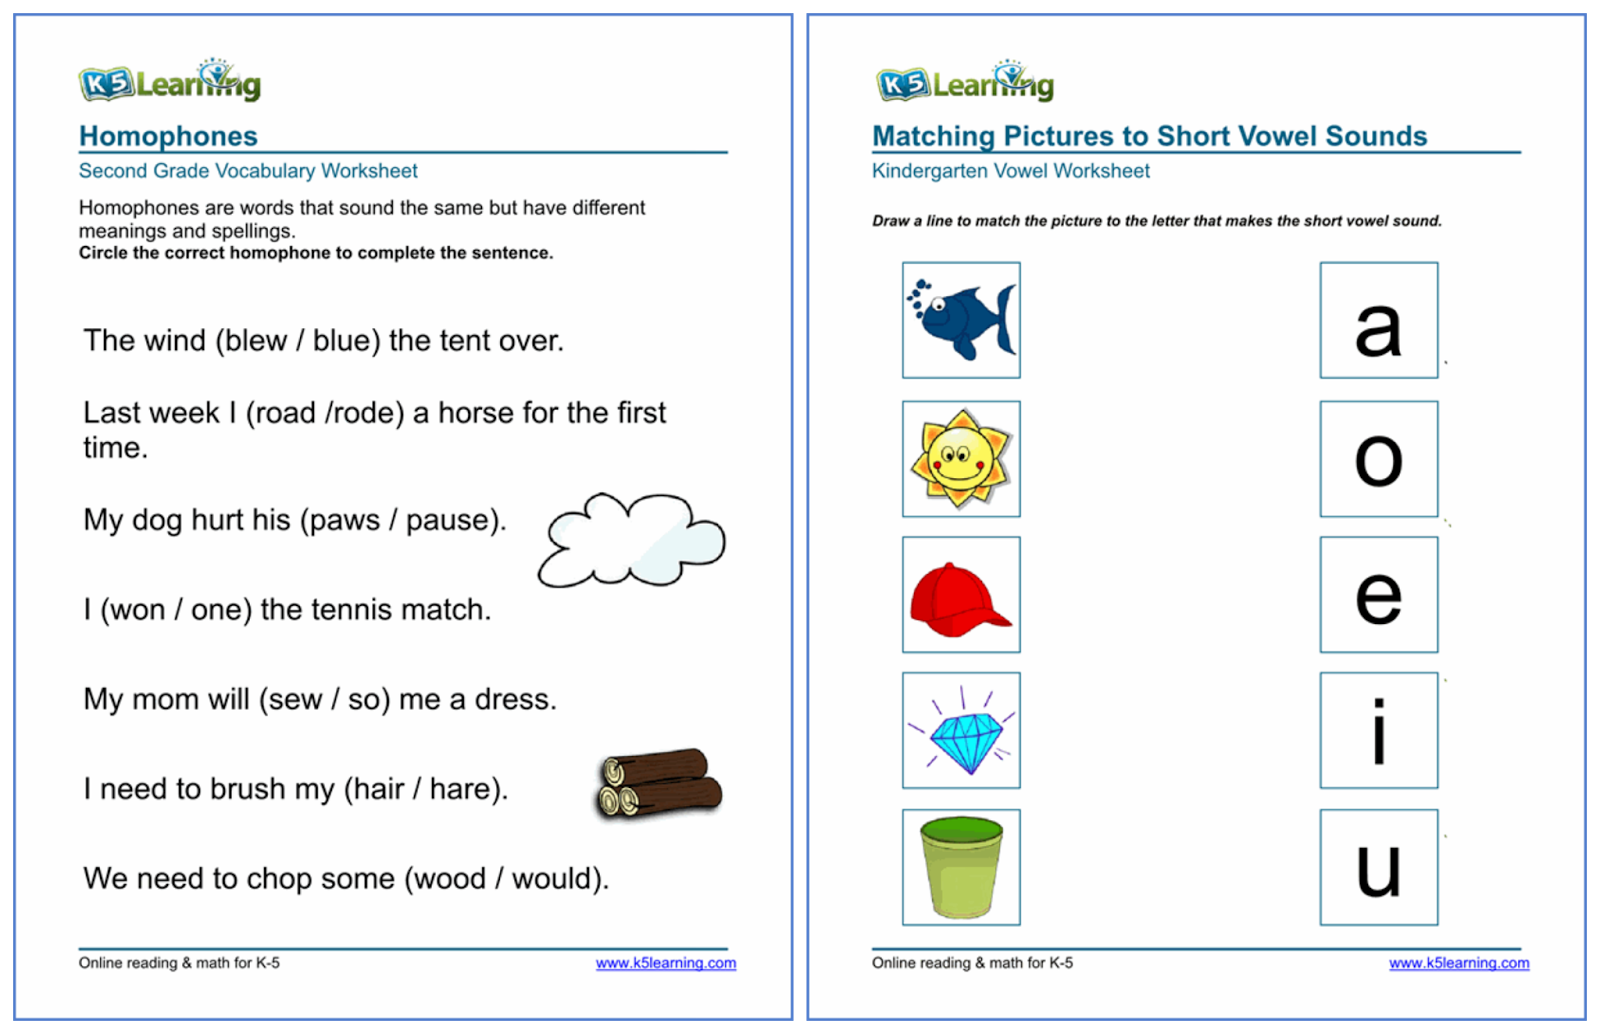 Online Math and Reading Enrichment Program for Kids: K5 Learning Review    Our Everyday Harvest [ 1034 x 1600 Pixel ]